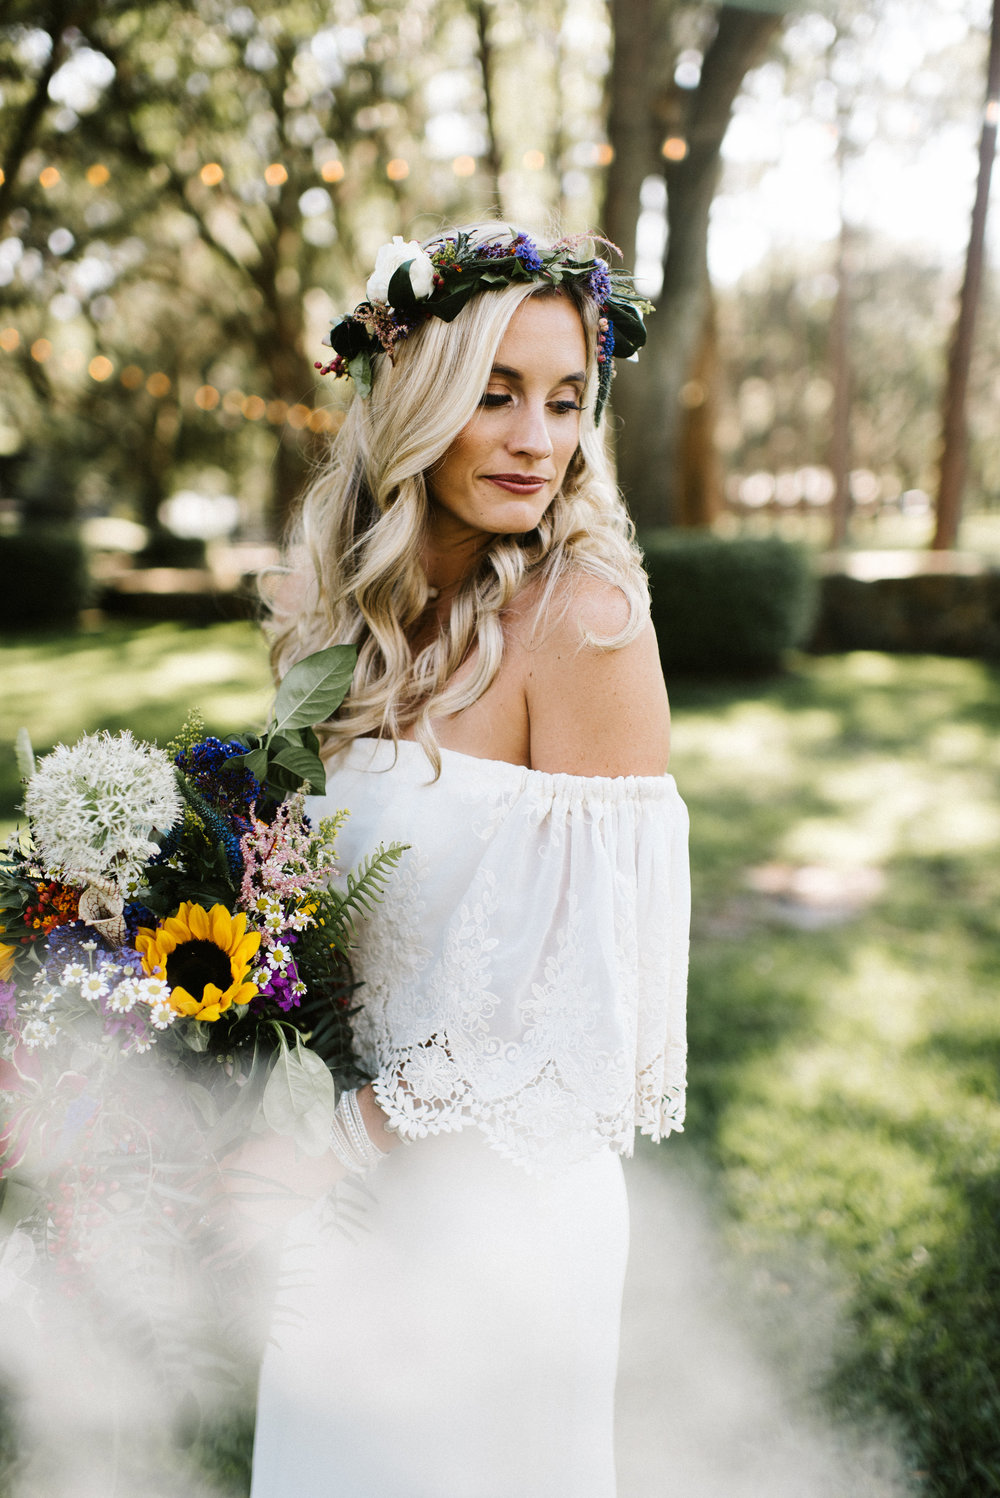 Rebecca-Read-Photography-brooke-jeremy-lang-farm-wedding-daughters-of-simone-lu-boho-wedding-southern-wedding-ivory-and-beau-bridal-boutique-savannah-bridal-boutique-savannah-wedding-dresses-lowcountry-bride-savannah-wedding-planner-13.jpg